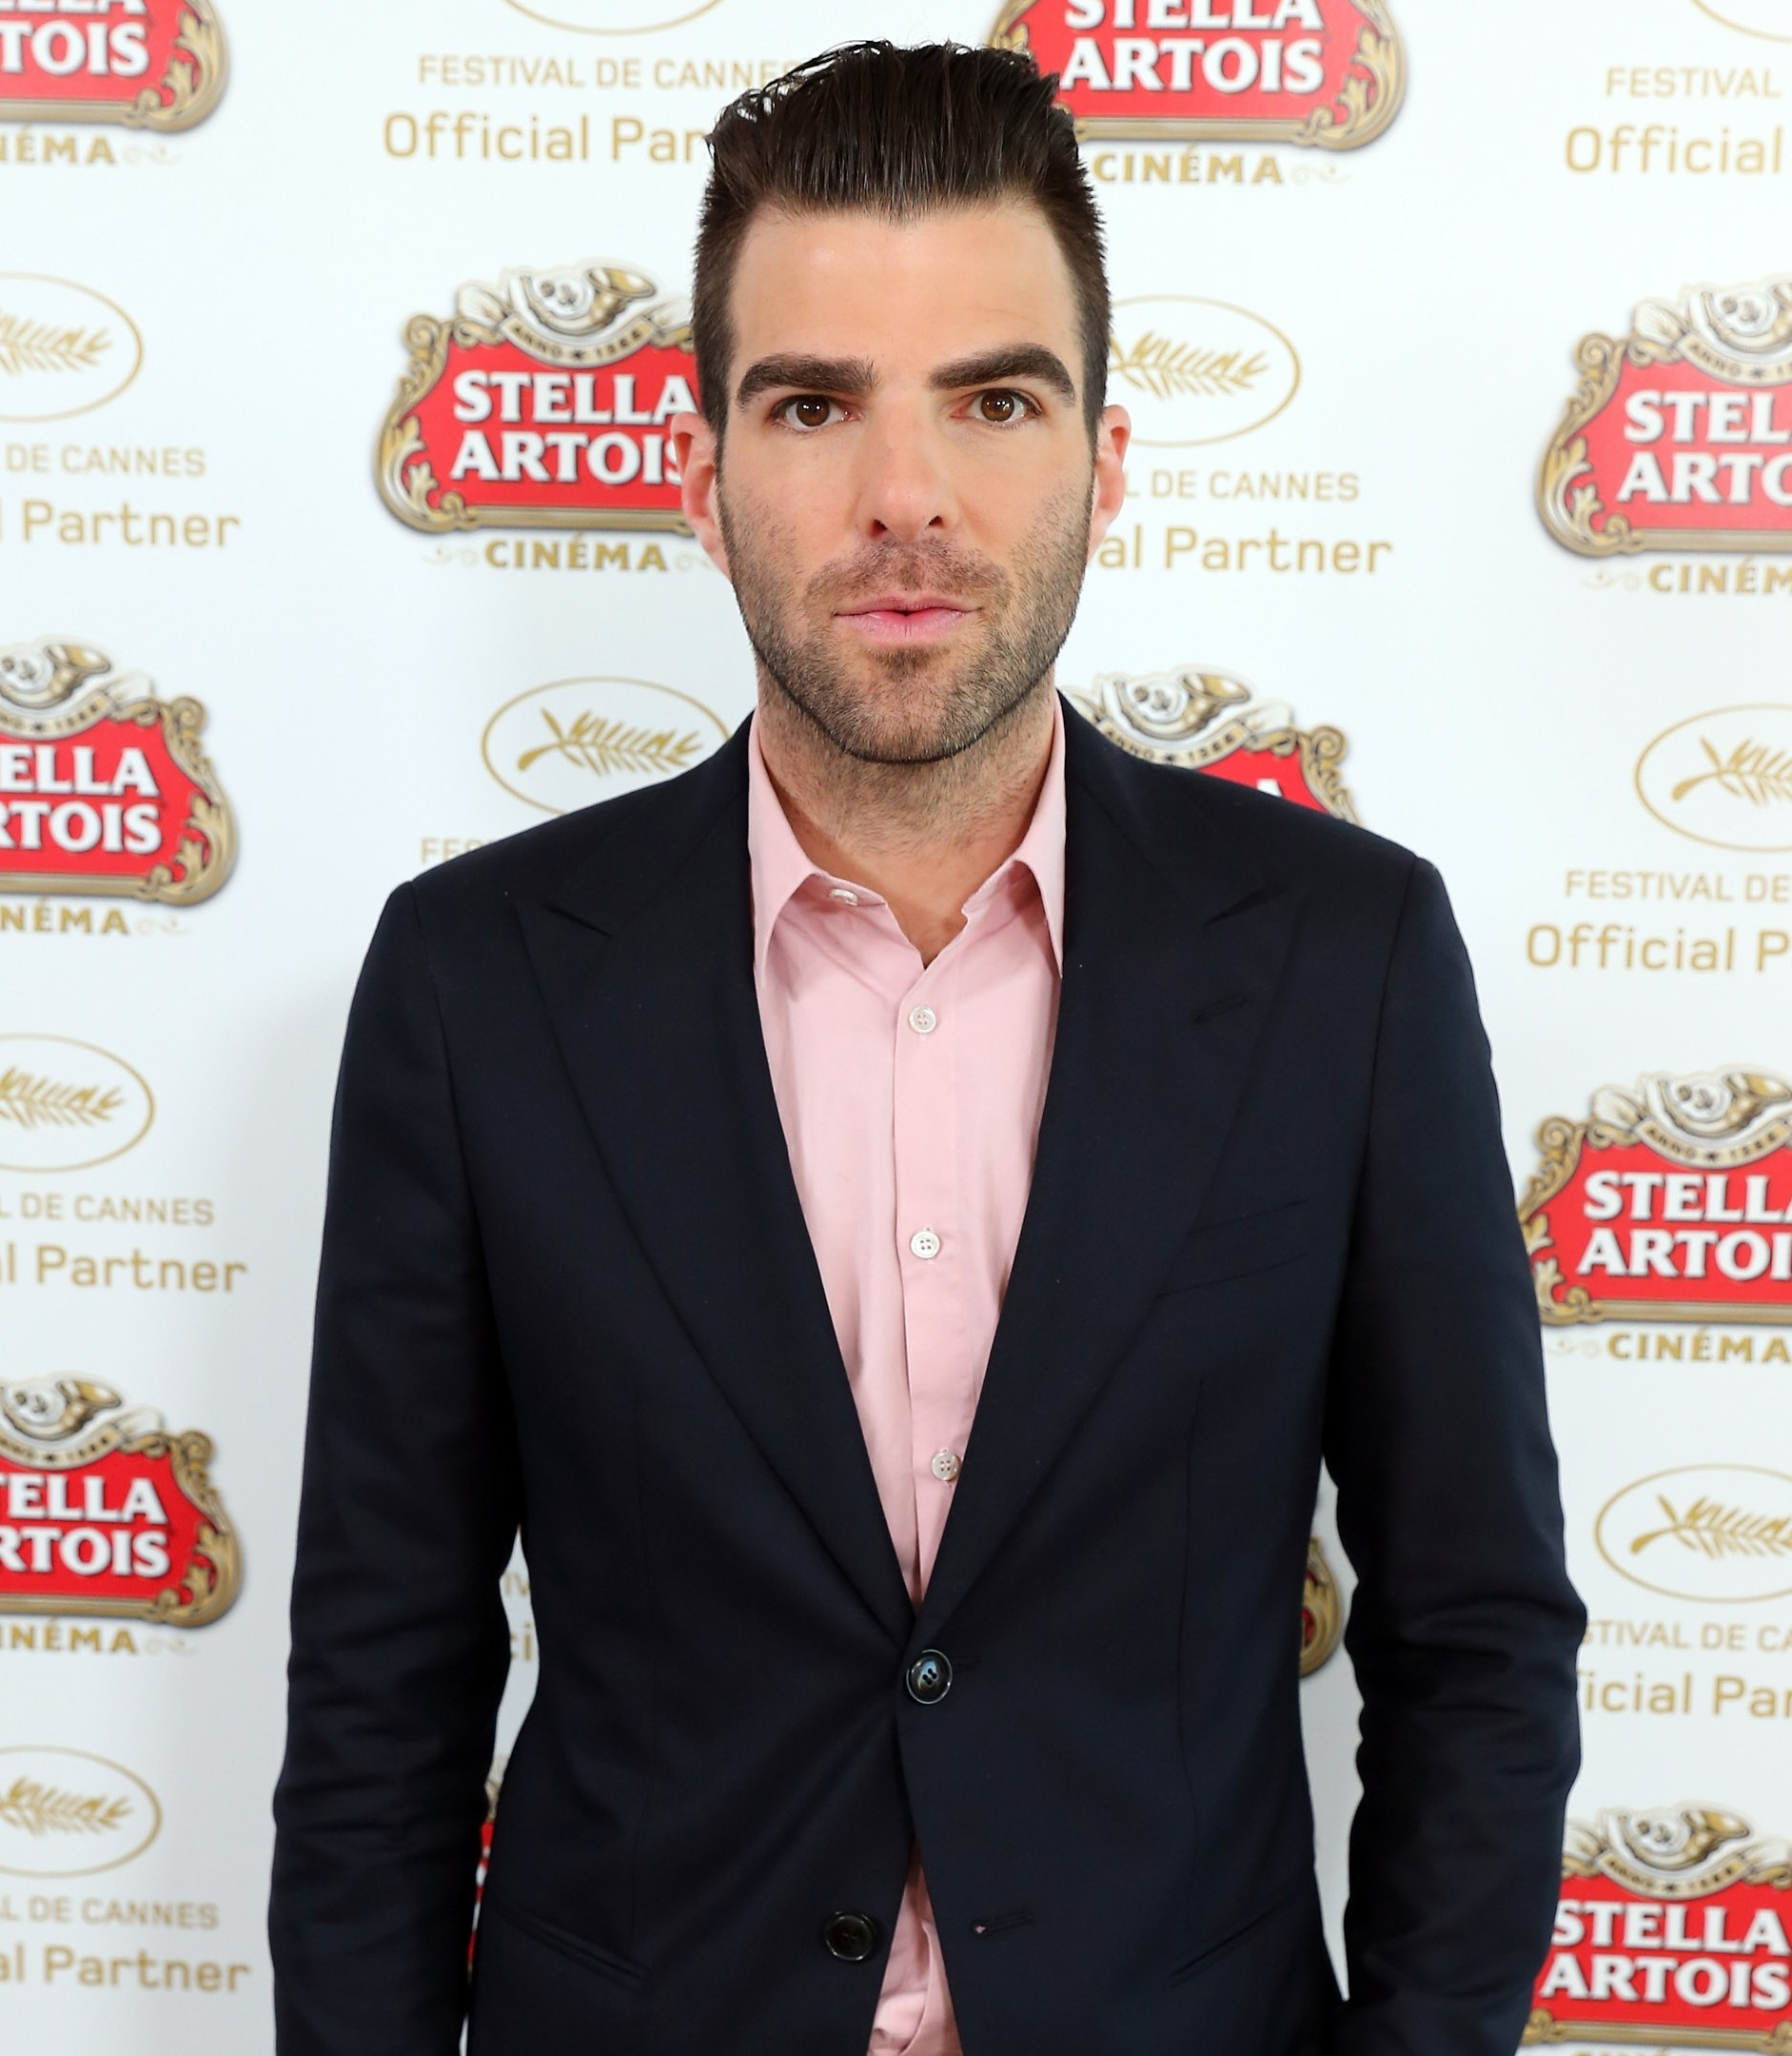 Star Trek's Zachary Quinto sets sights on Ewok role in new Star Wars